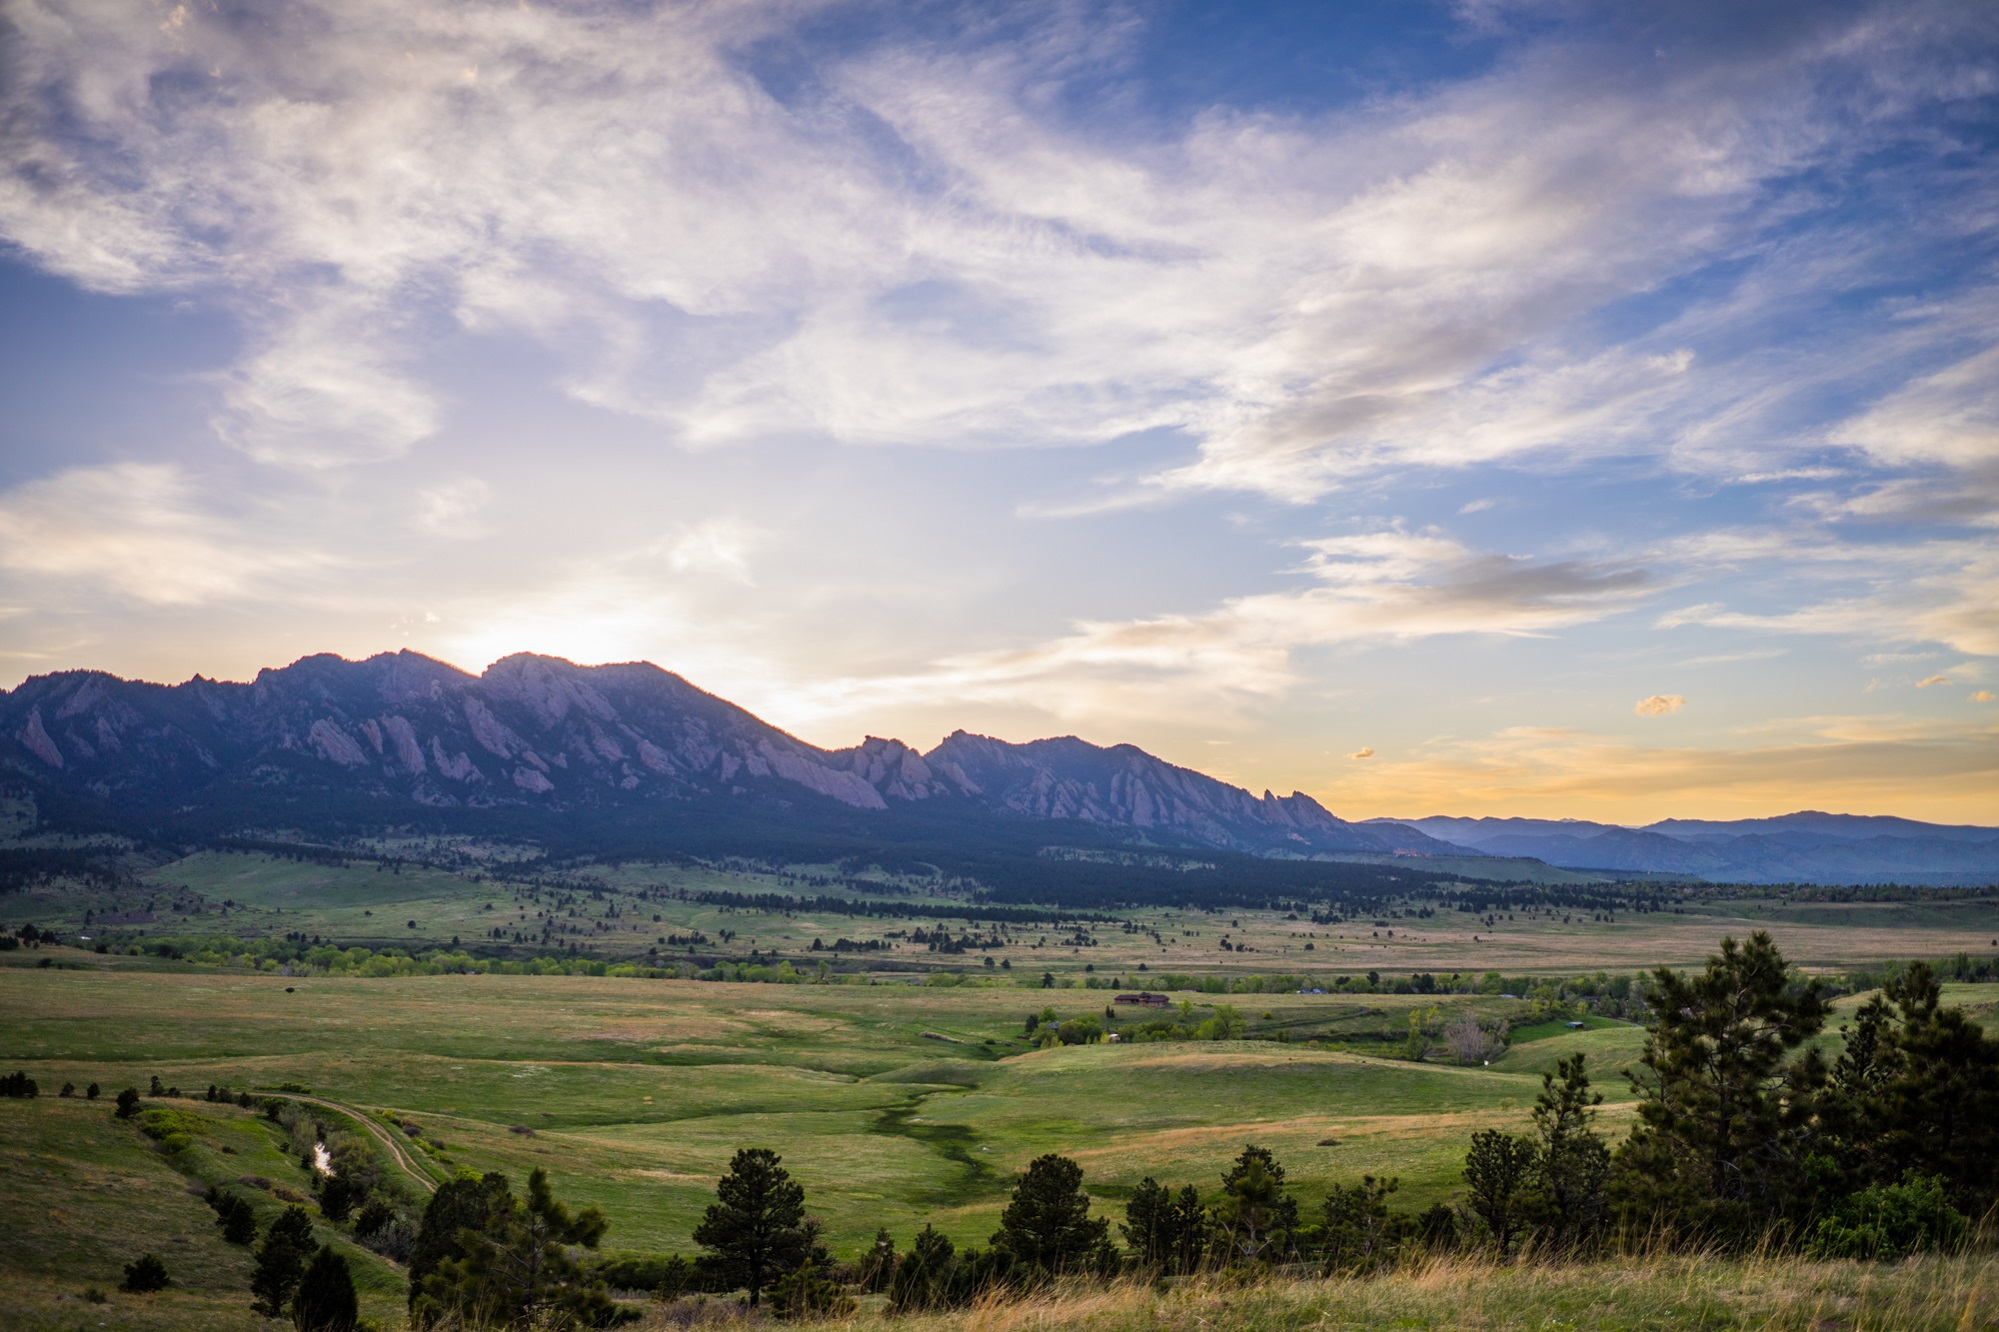 sunset behind the Flatirons with a creek snaking through a green field